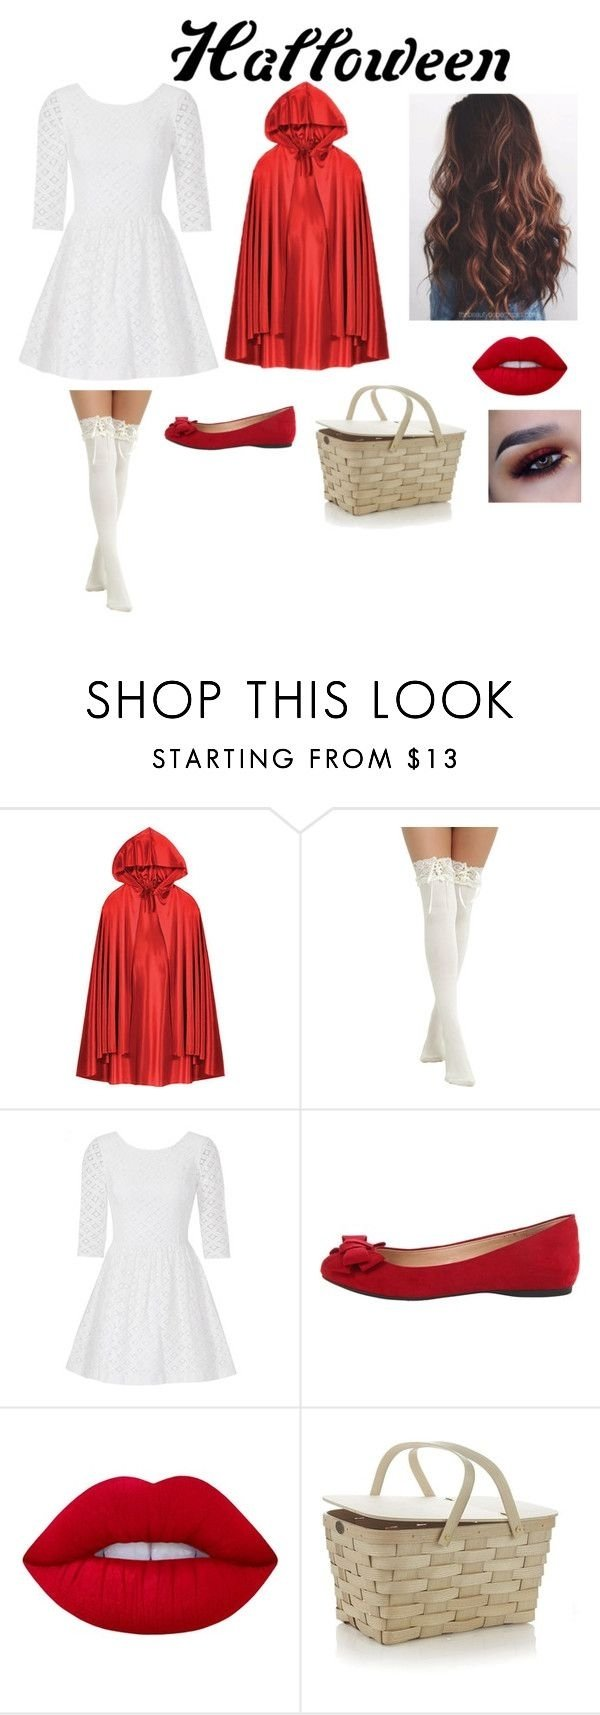 10 Pretty Little Red Riding Hood Costume Ideas little red riding hood diy red riding hood jessica simpsons and 1 2021